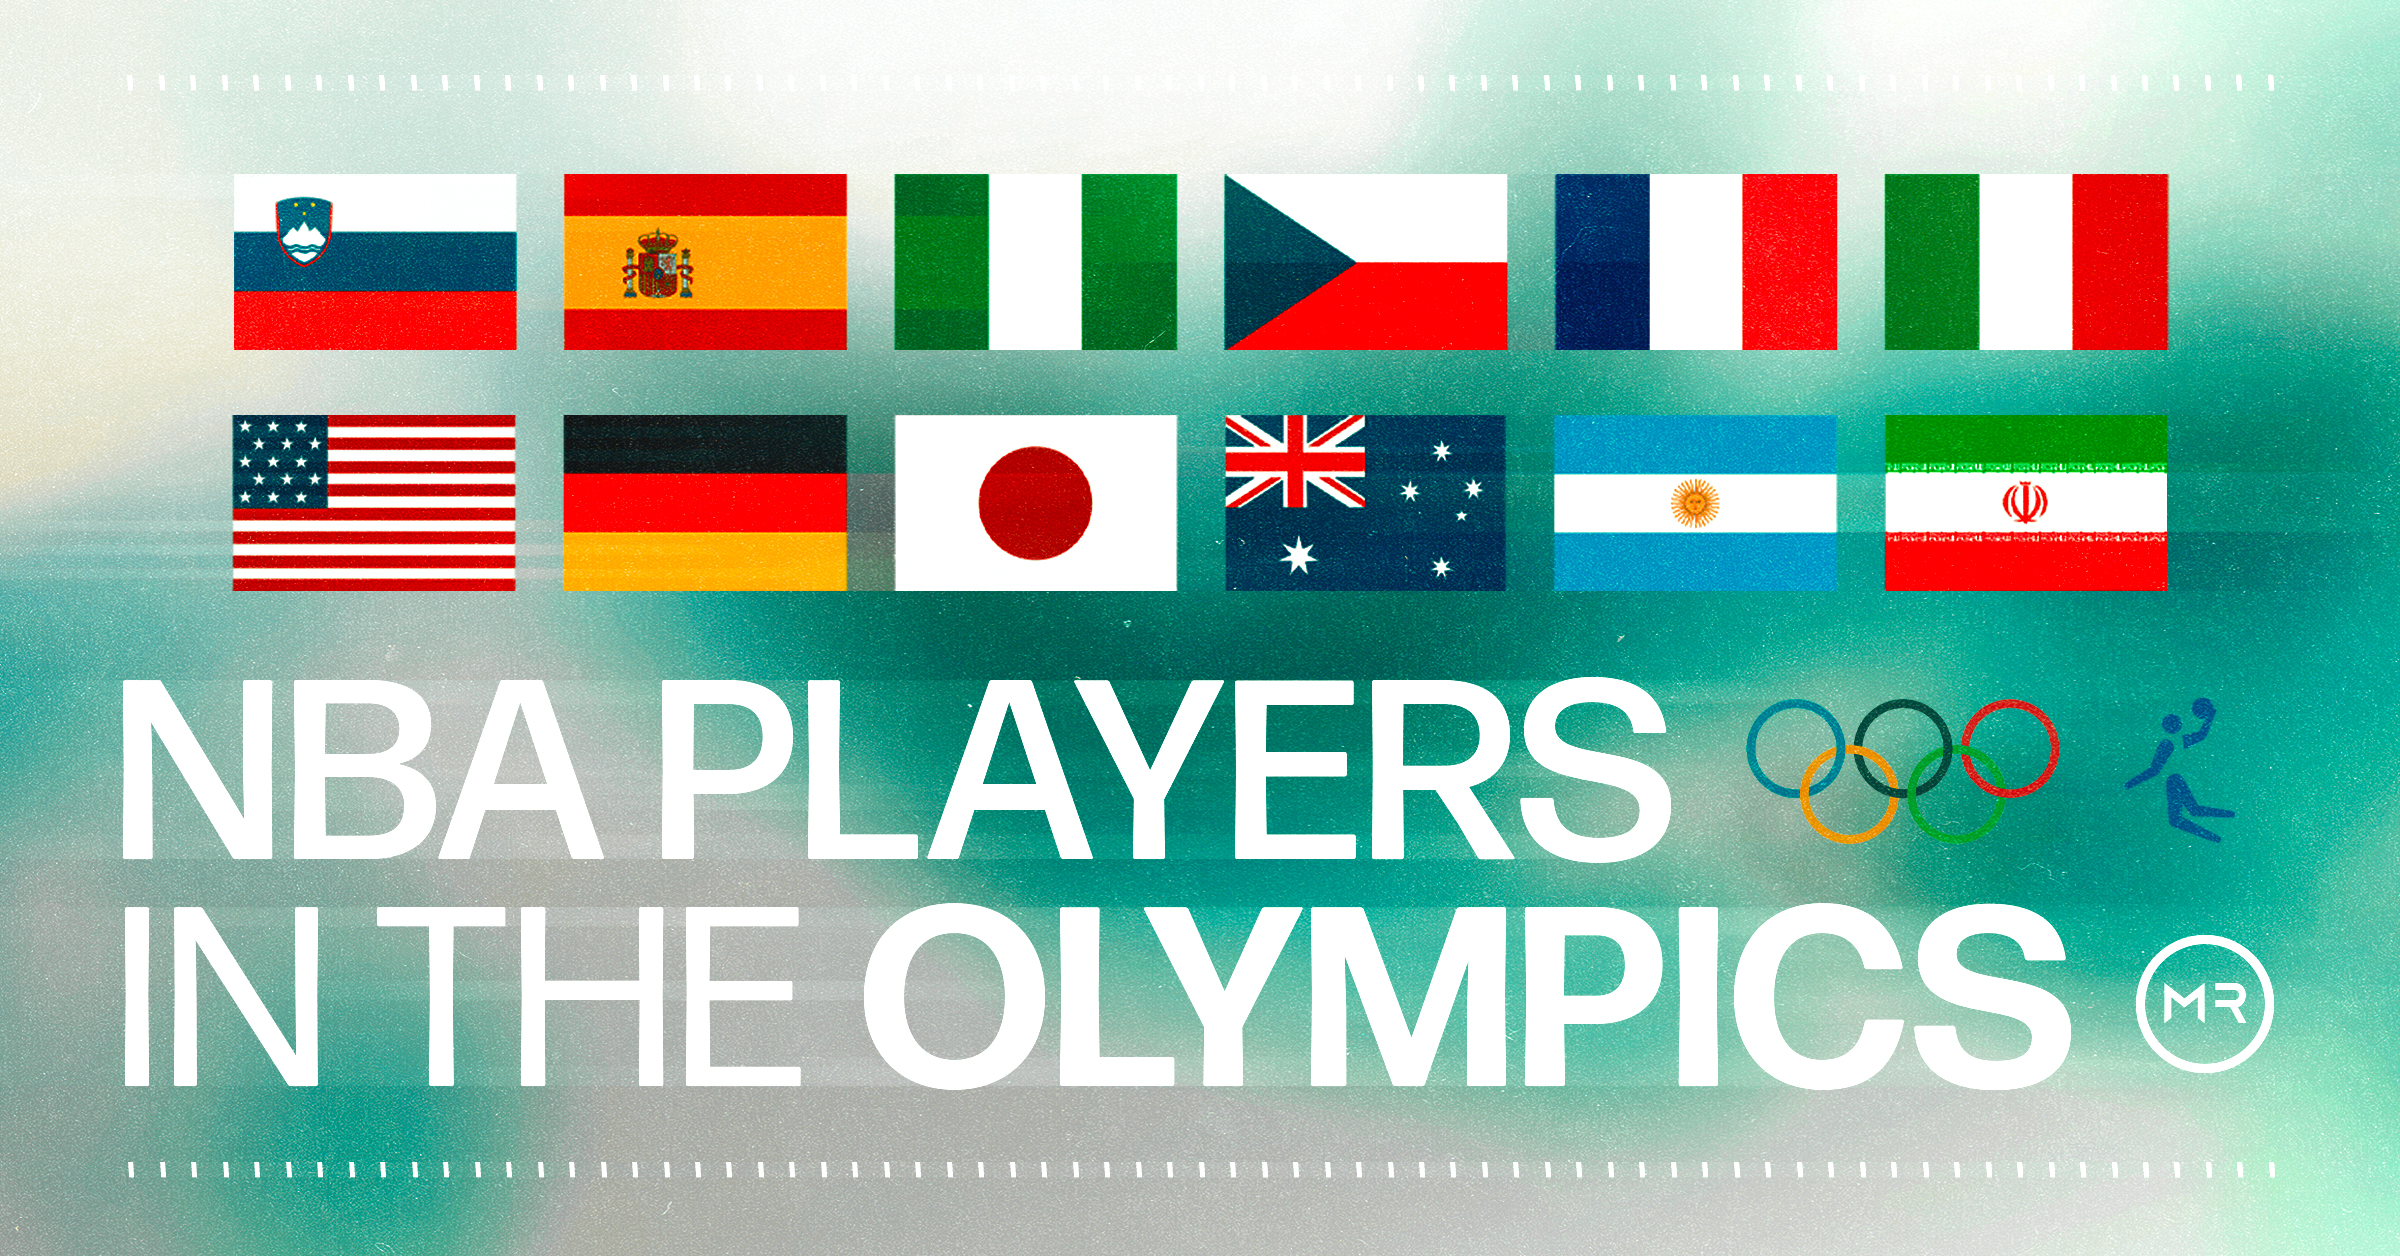 The 2020 Tokyo Men's Olympic Basketball tournament starts on July 25. Over 30 of the Olympic players have Top Shot Moments that could be used in Quests.